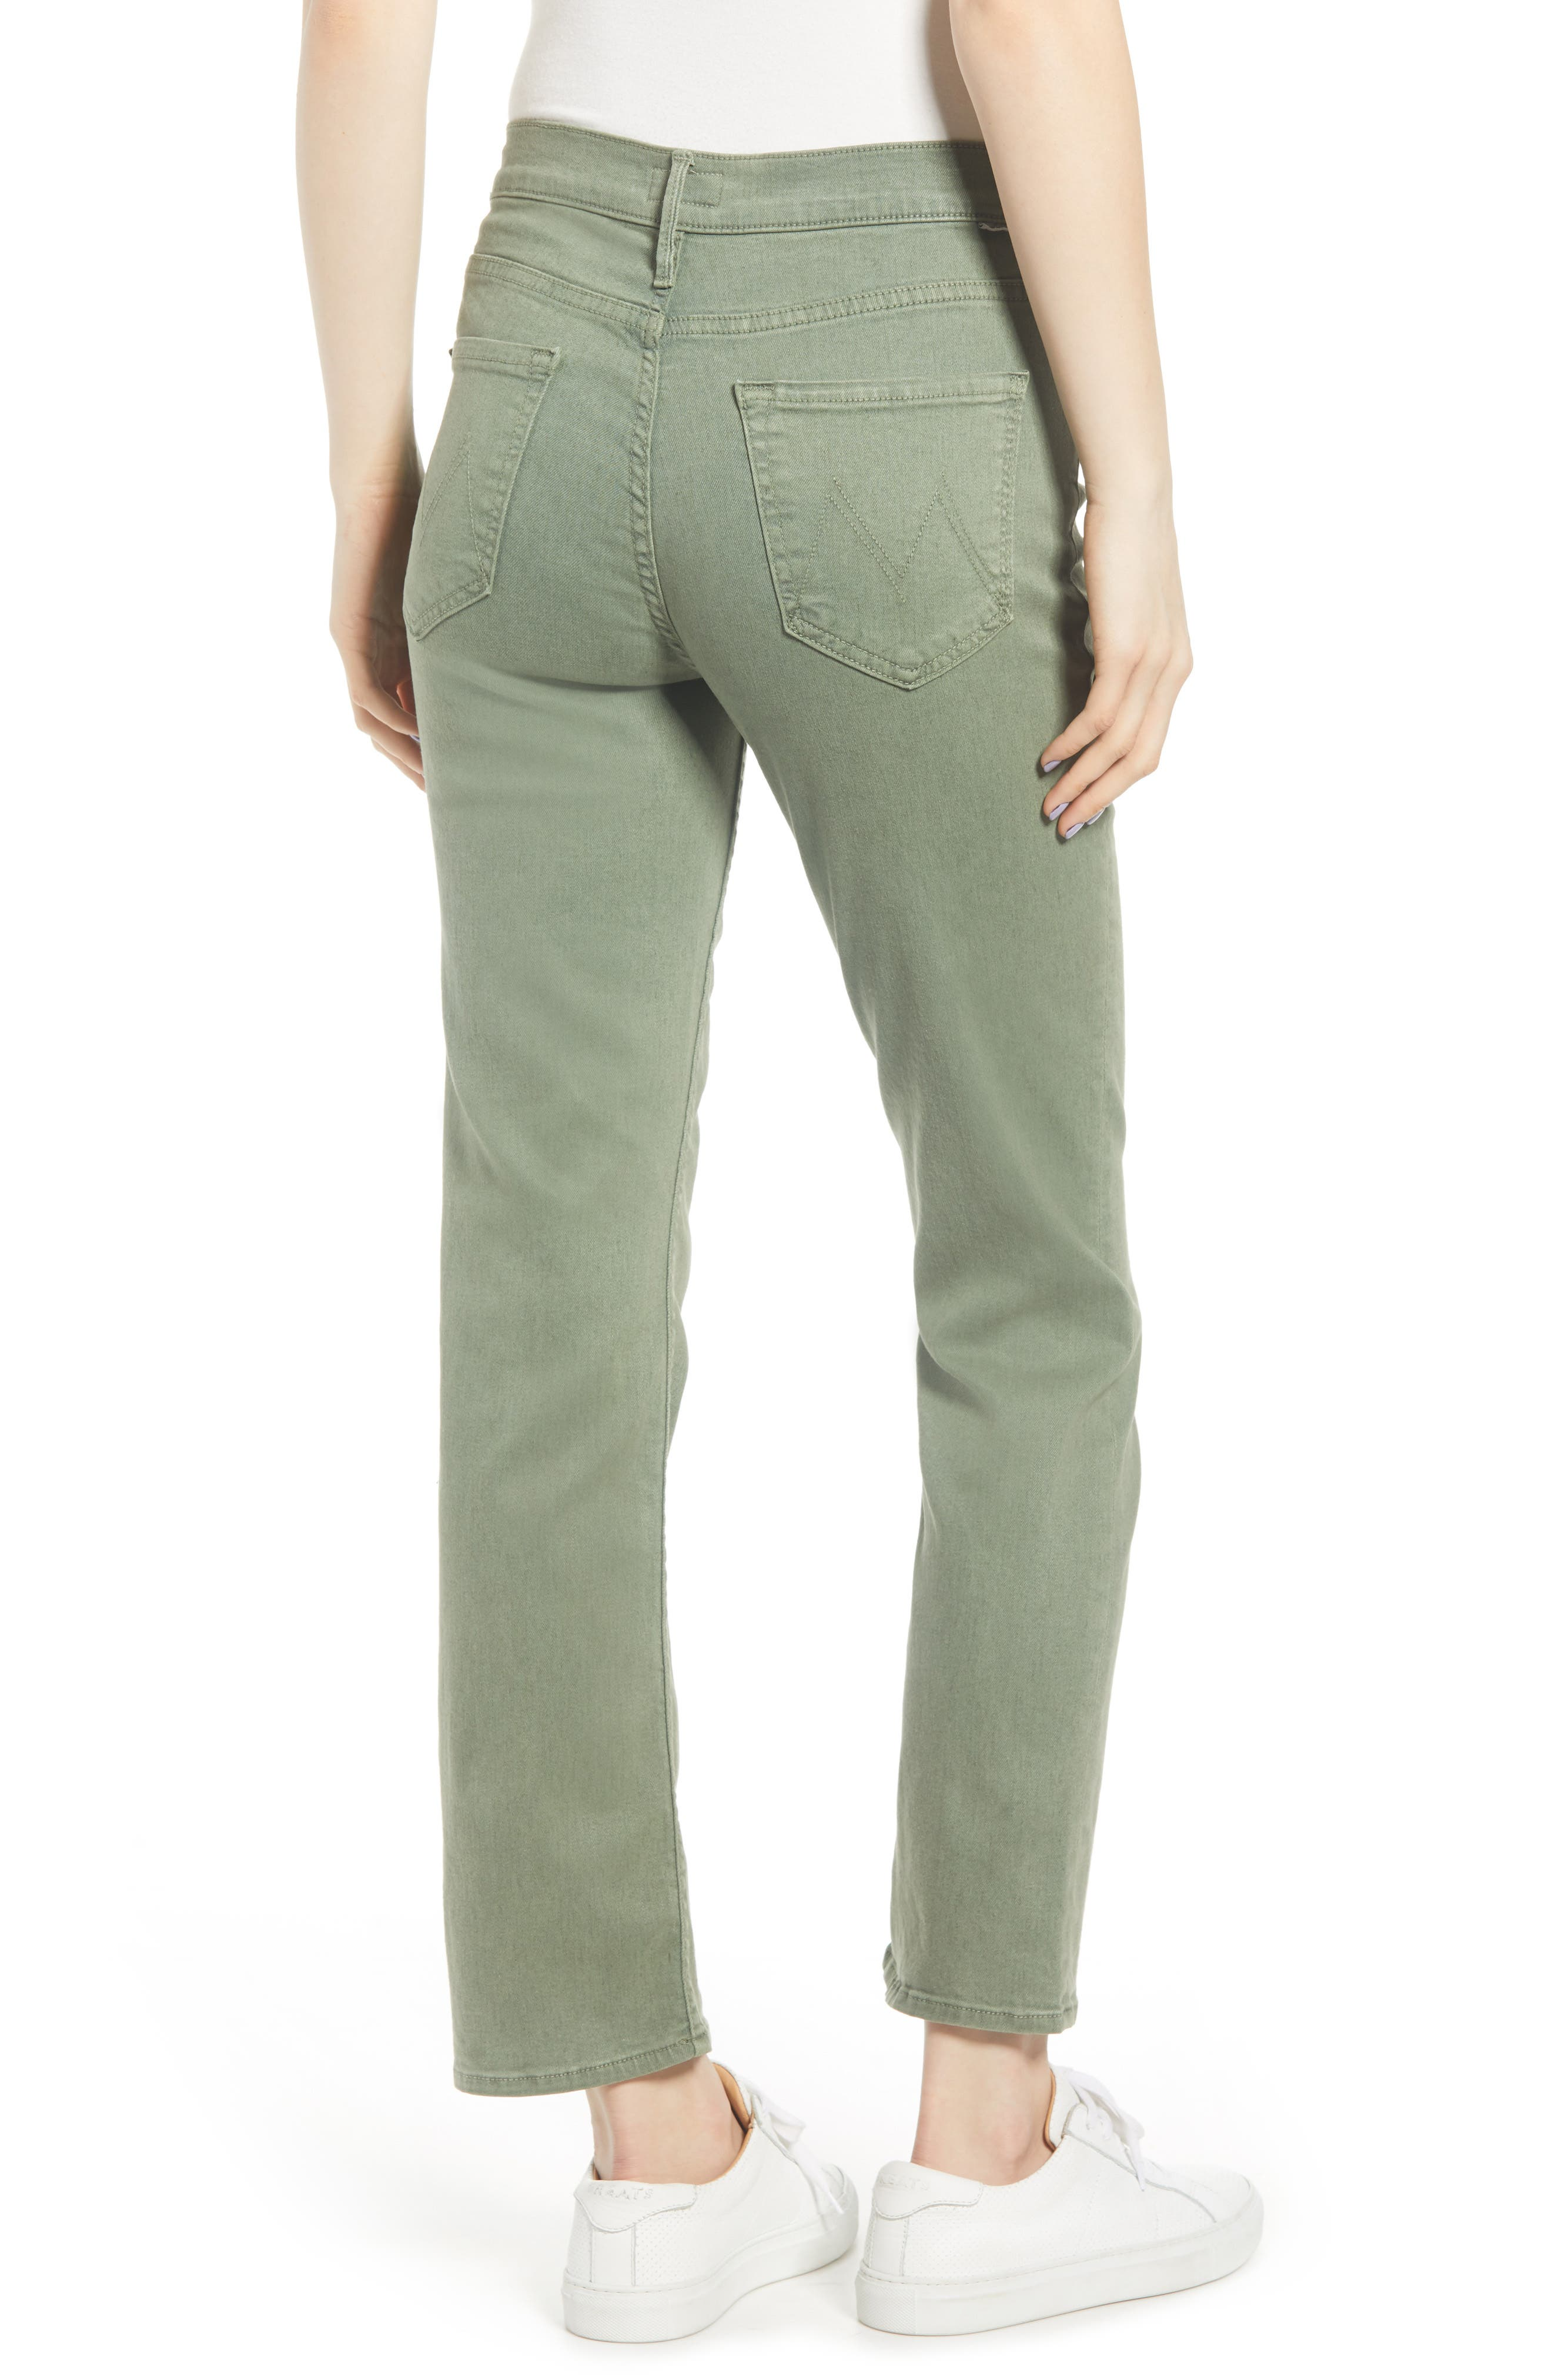 MOTHER, The Dutchie Super High Waist Ankle Straight Leg Jeans, Alternate thumbnail 2, color, ARMY GREEN